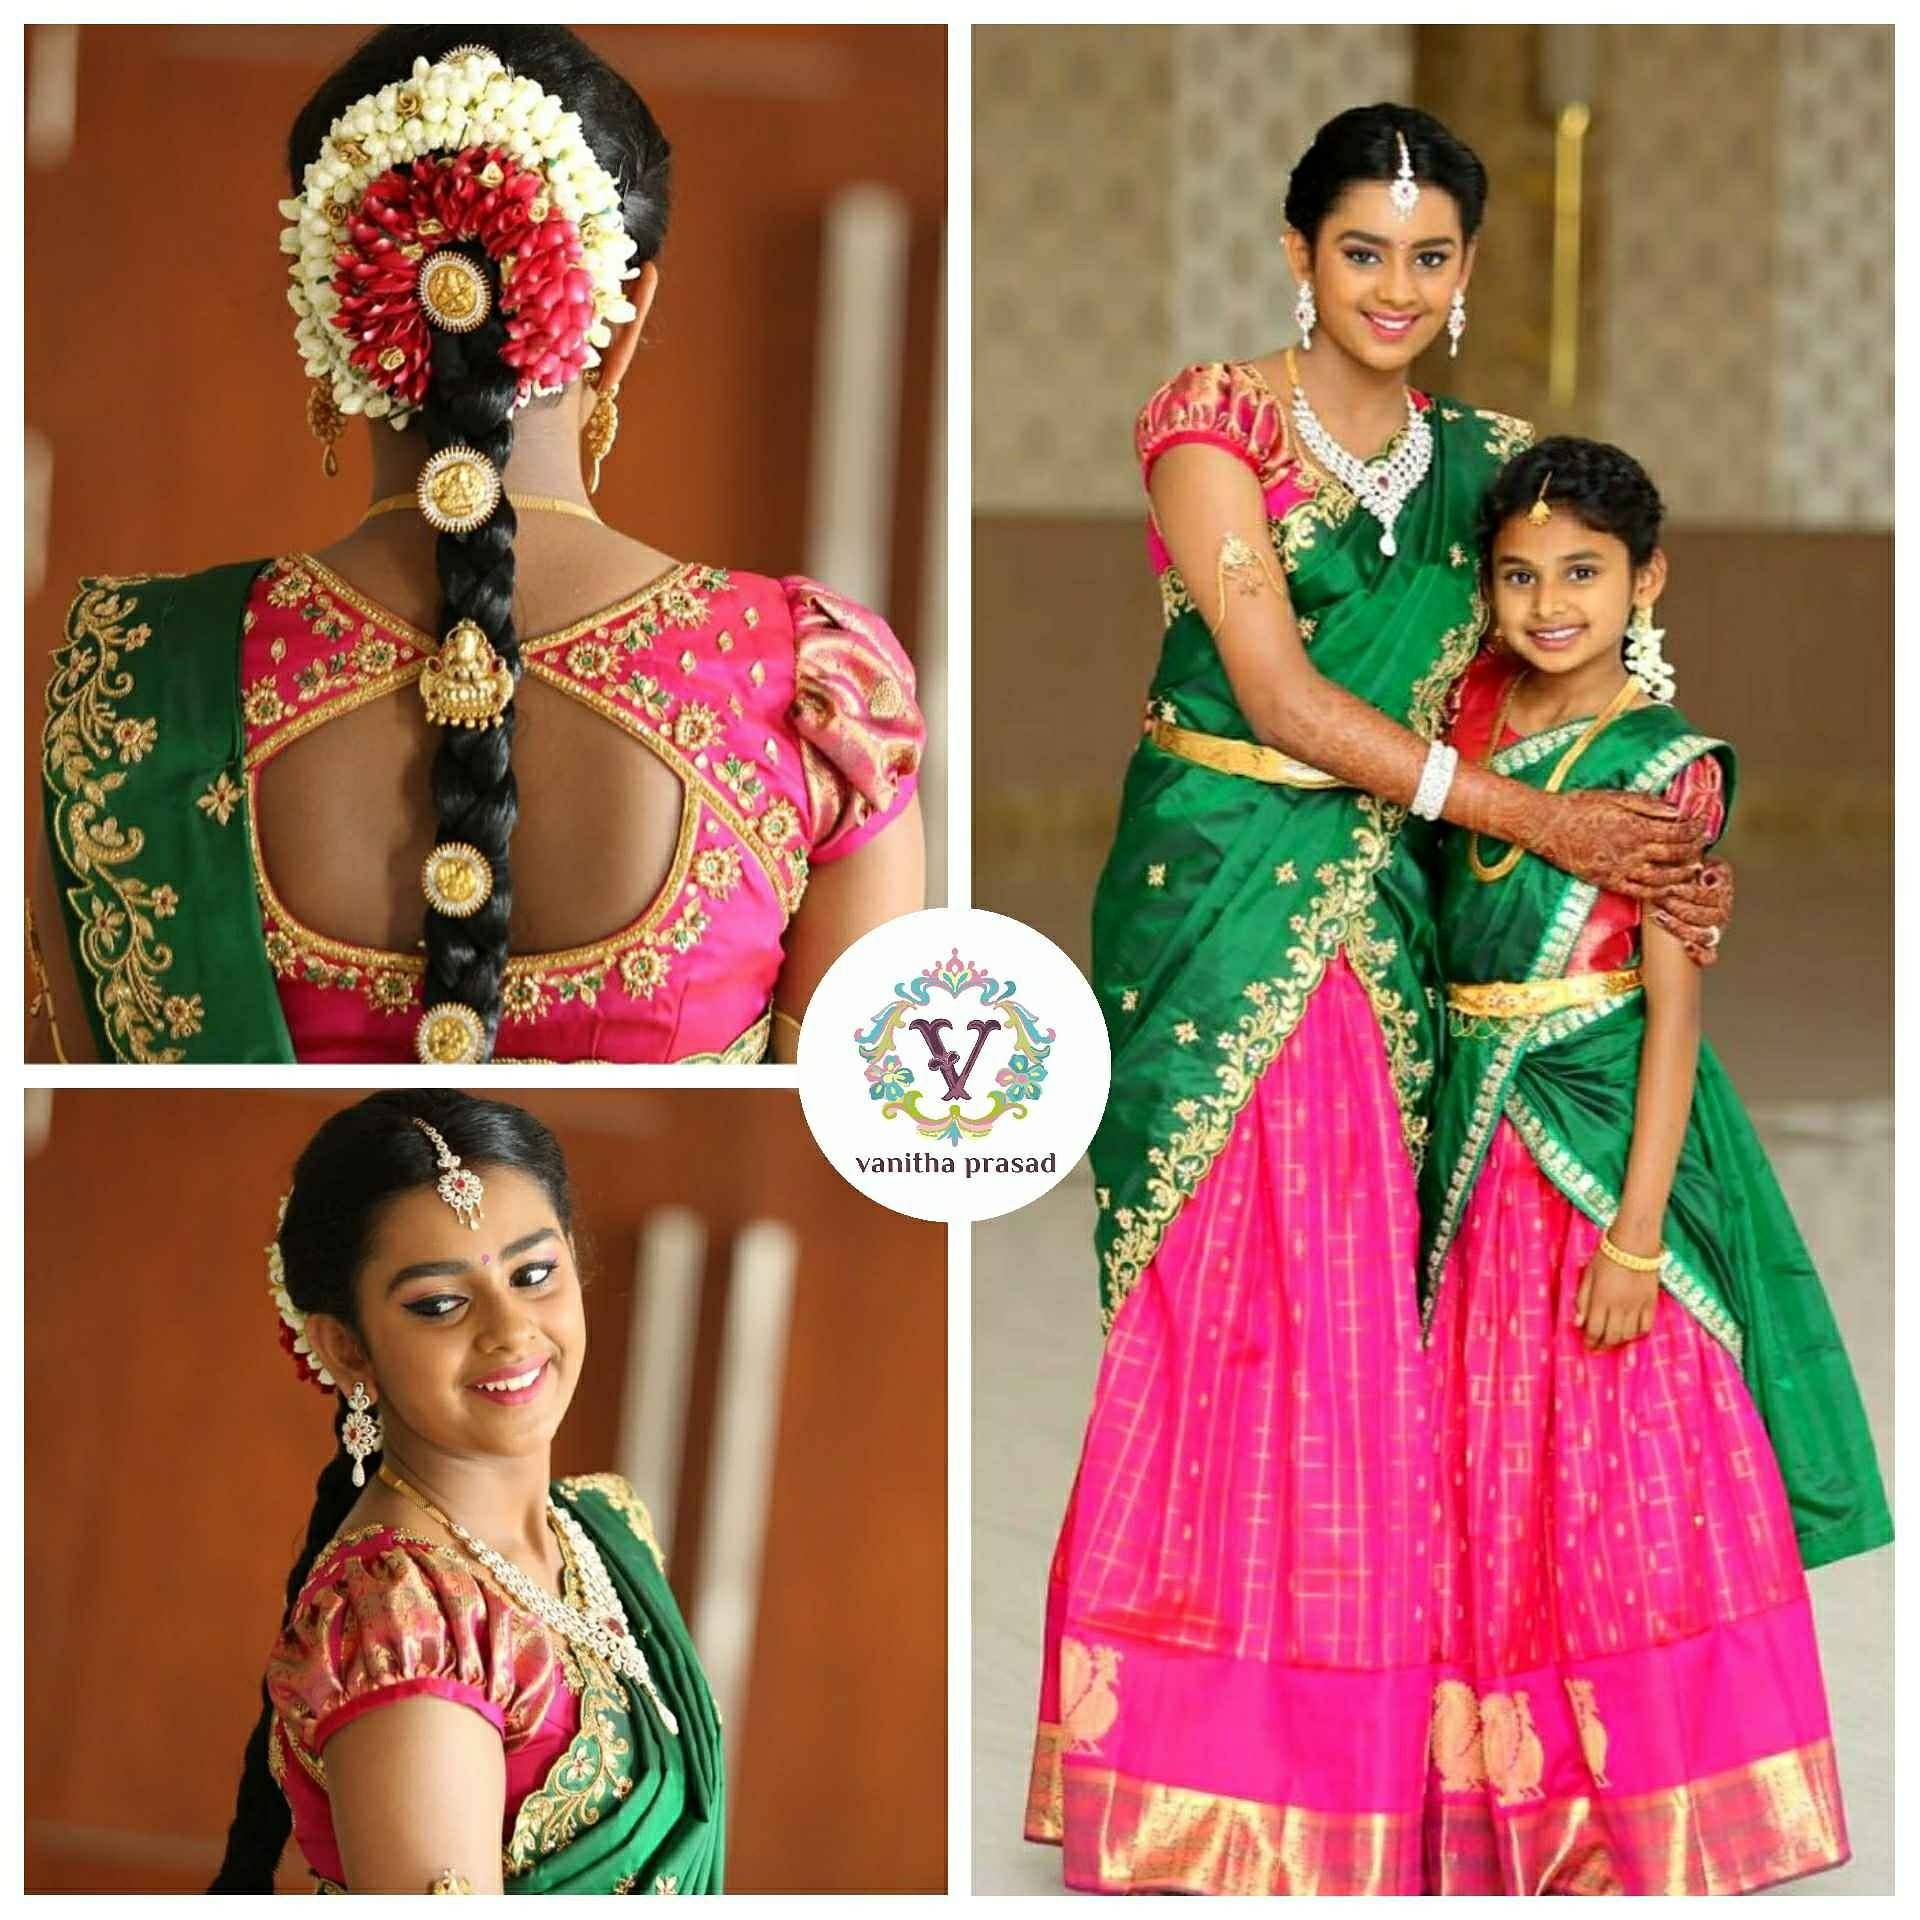 86806bb06a3ac Green and pink is lovely combination for traditional langa voni. Beautiful  pink color benaras lehenga and blouse with green color voni is designed  with hand ...